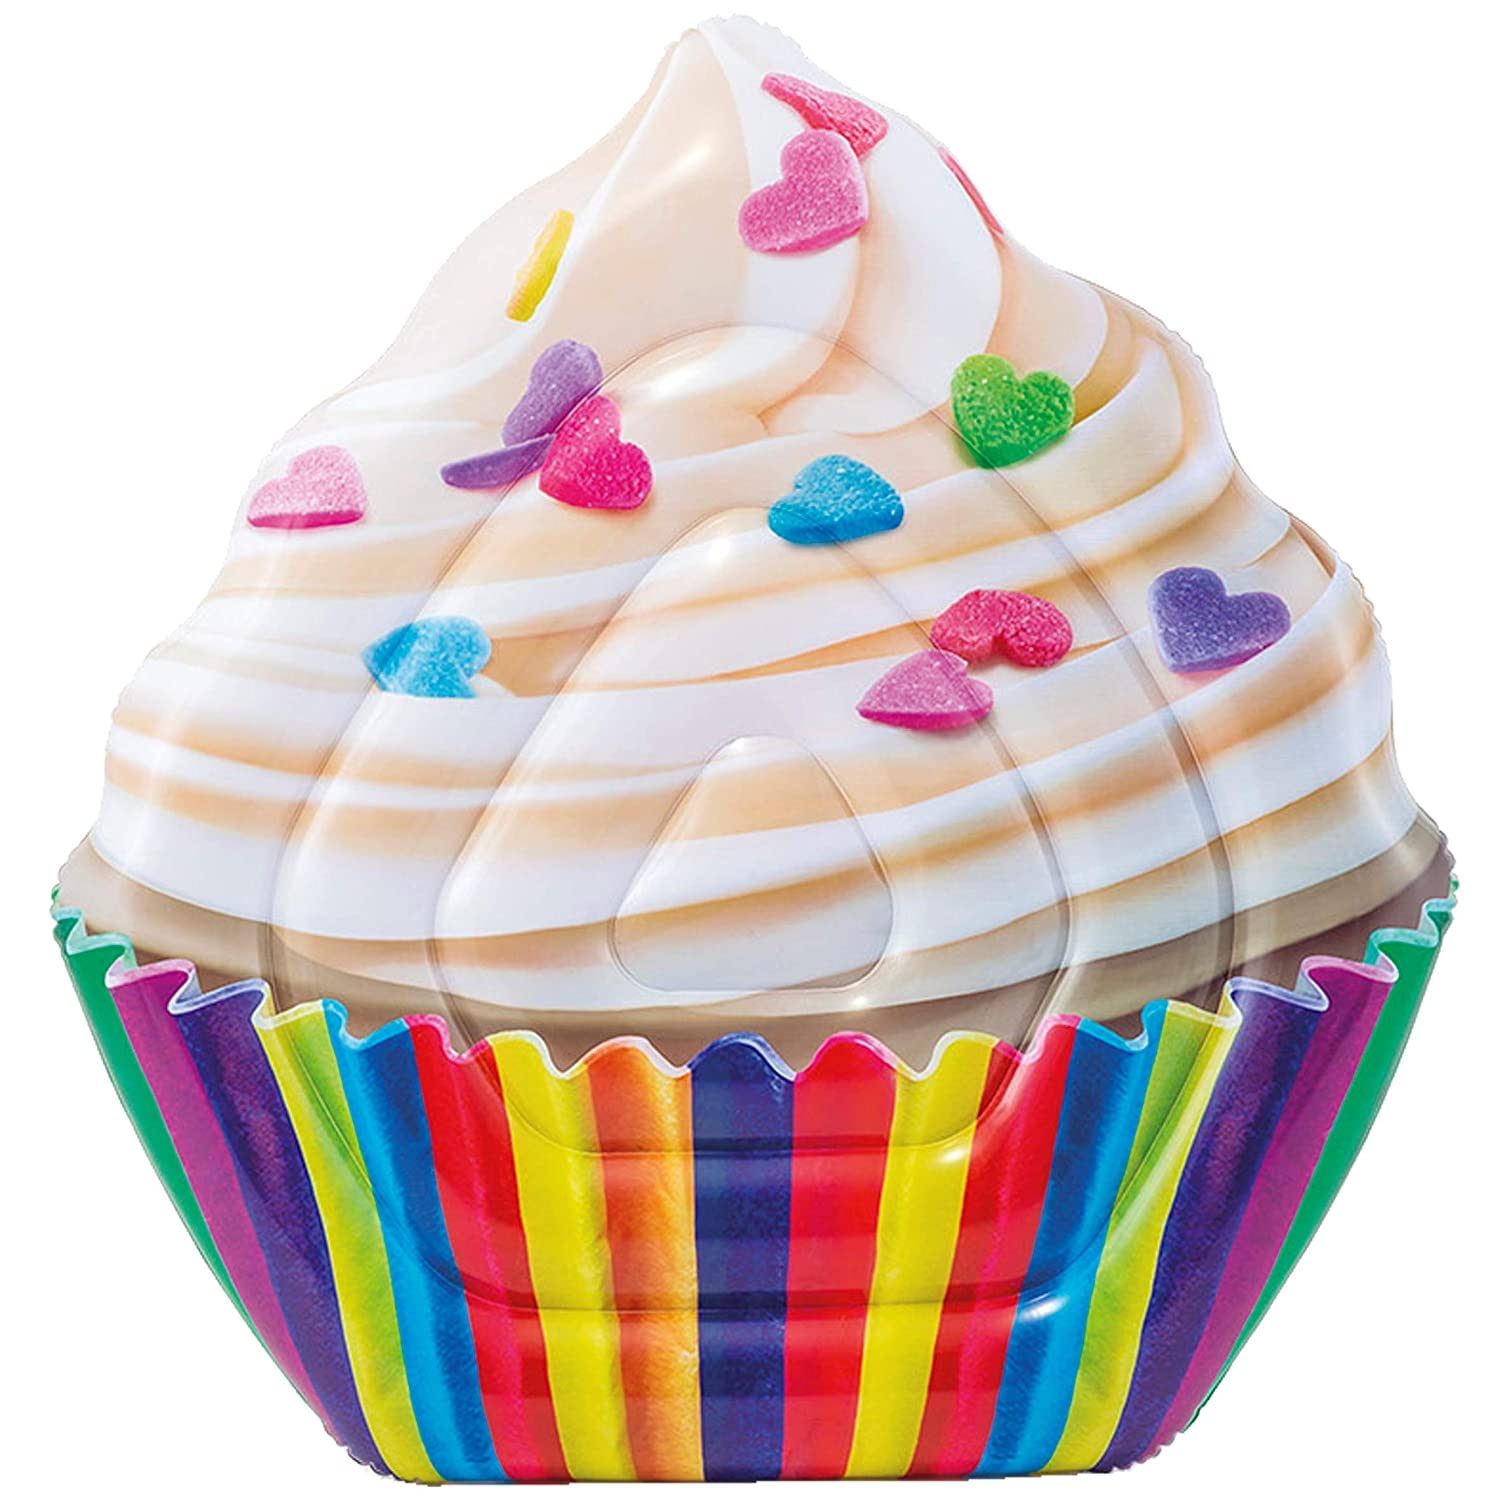 Intex 58770EU - Colchoneta Hinchable Cupcake fotorrealista: Amazon ...